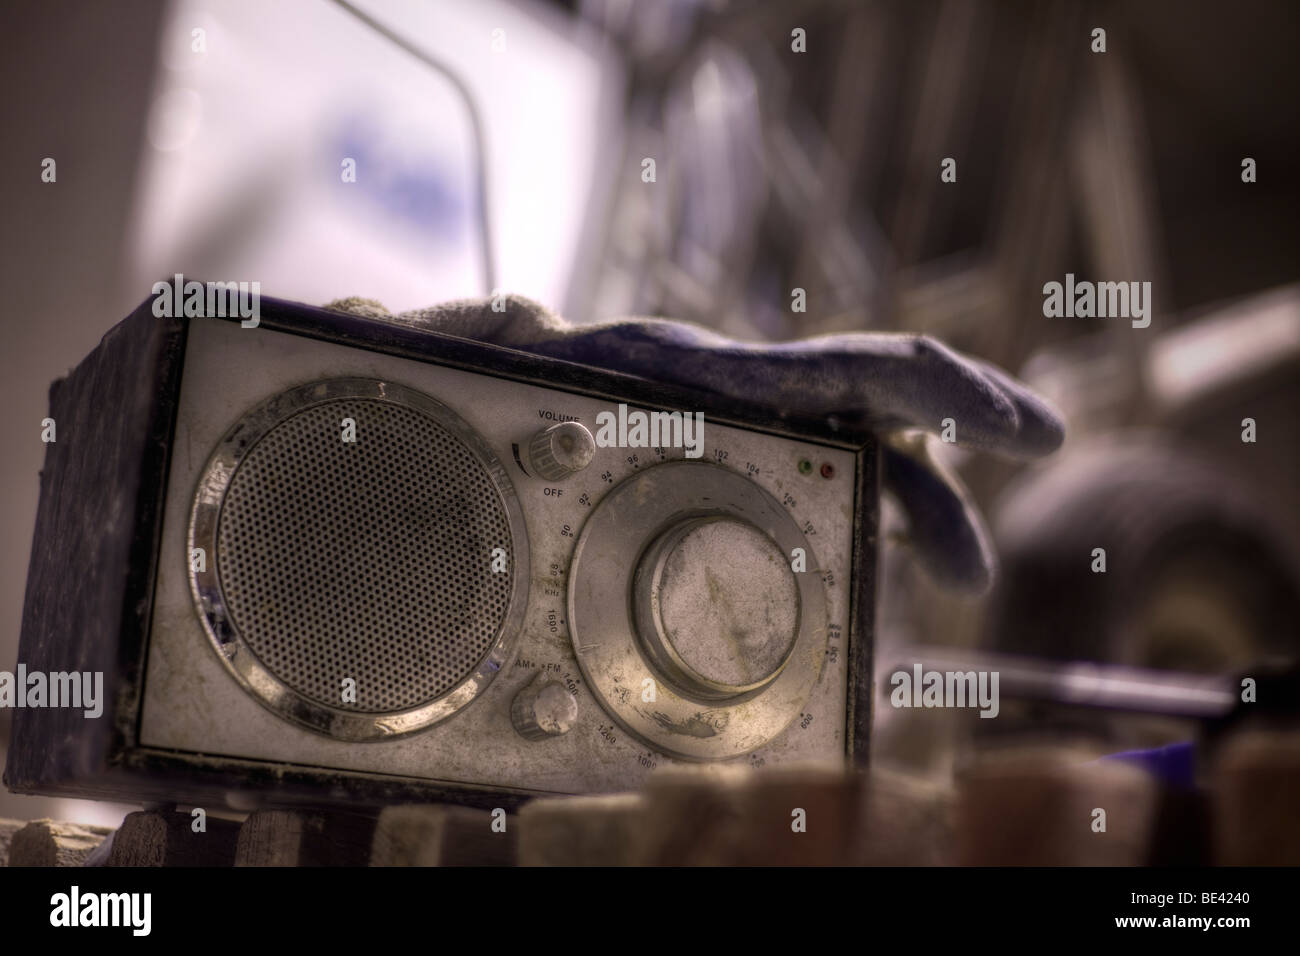 Work radio - Stock Image